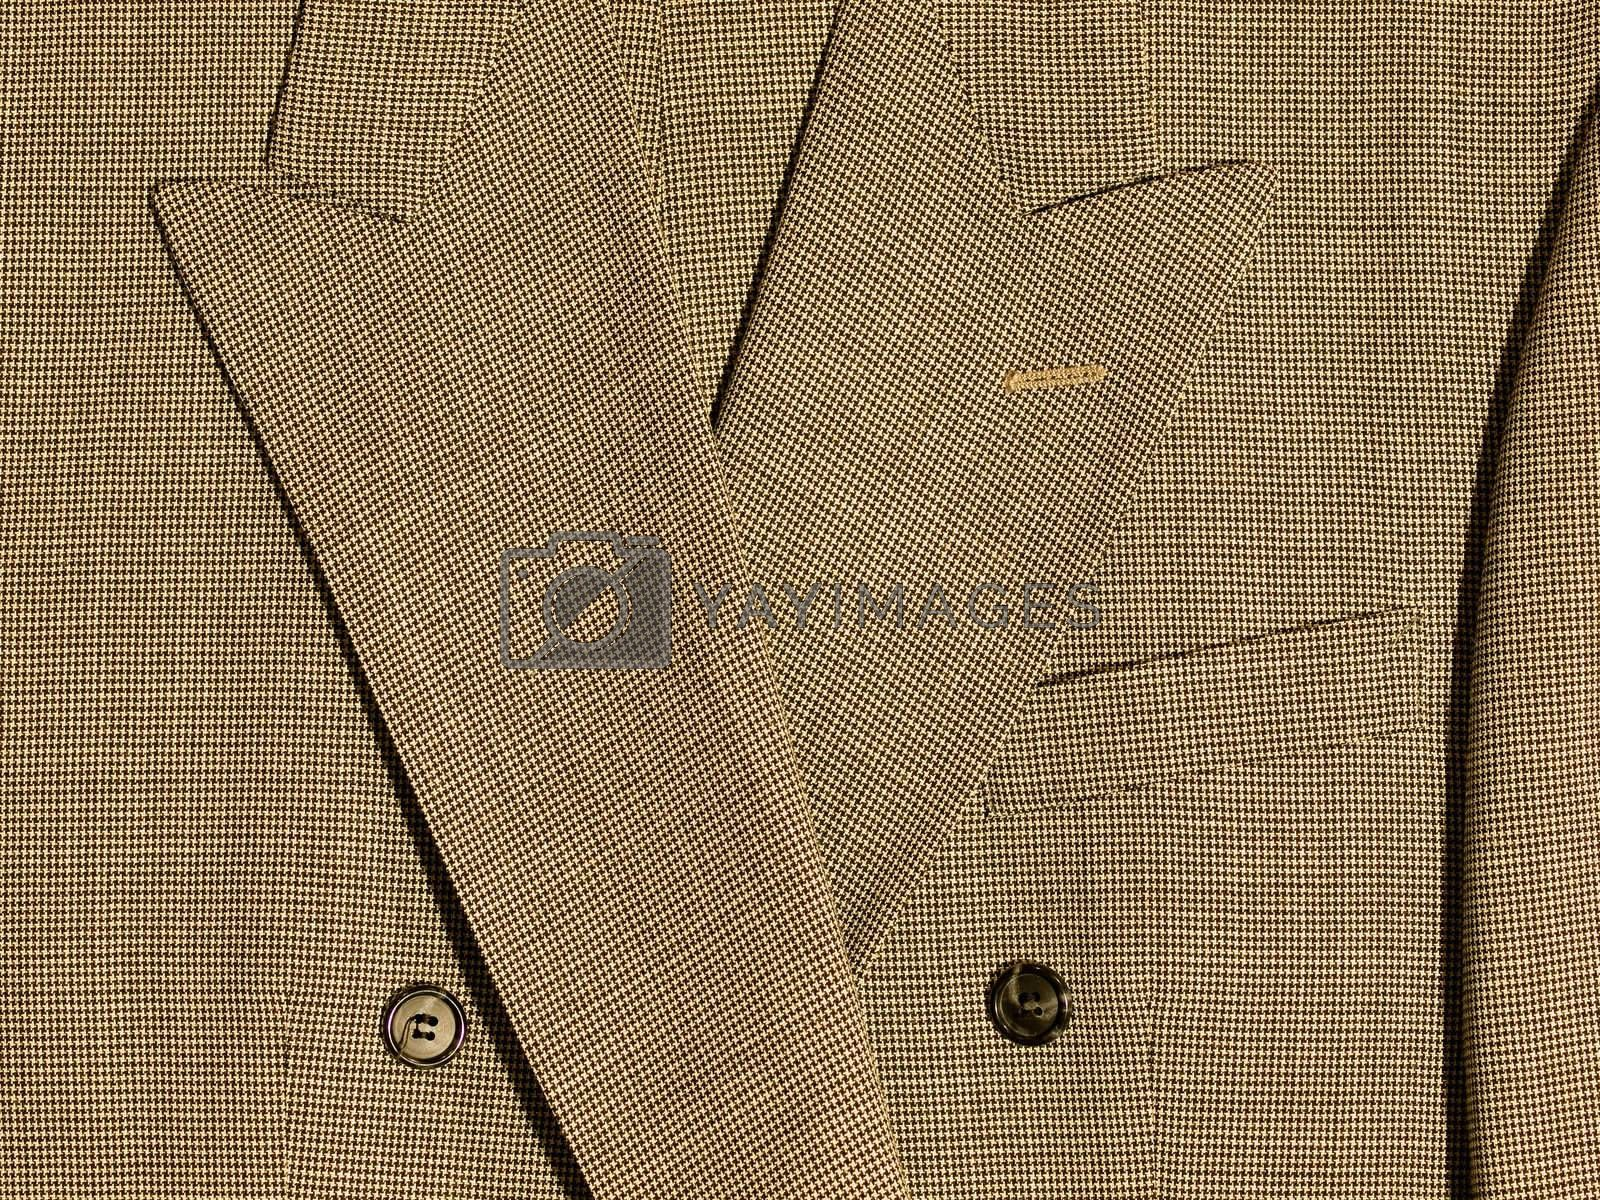 Full Frame Background of Fabric and Detail from Mens Suits